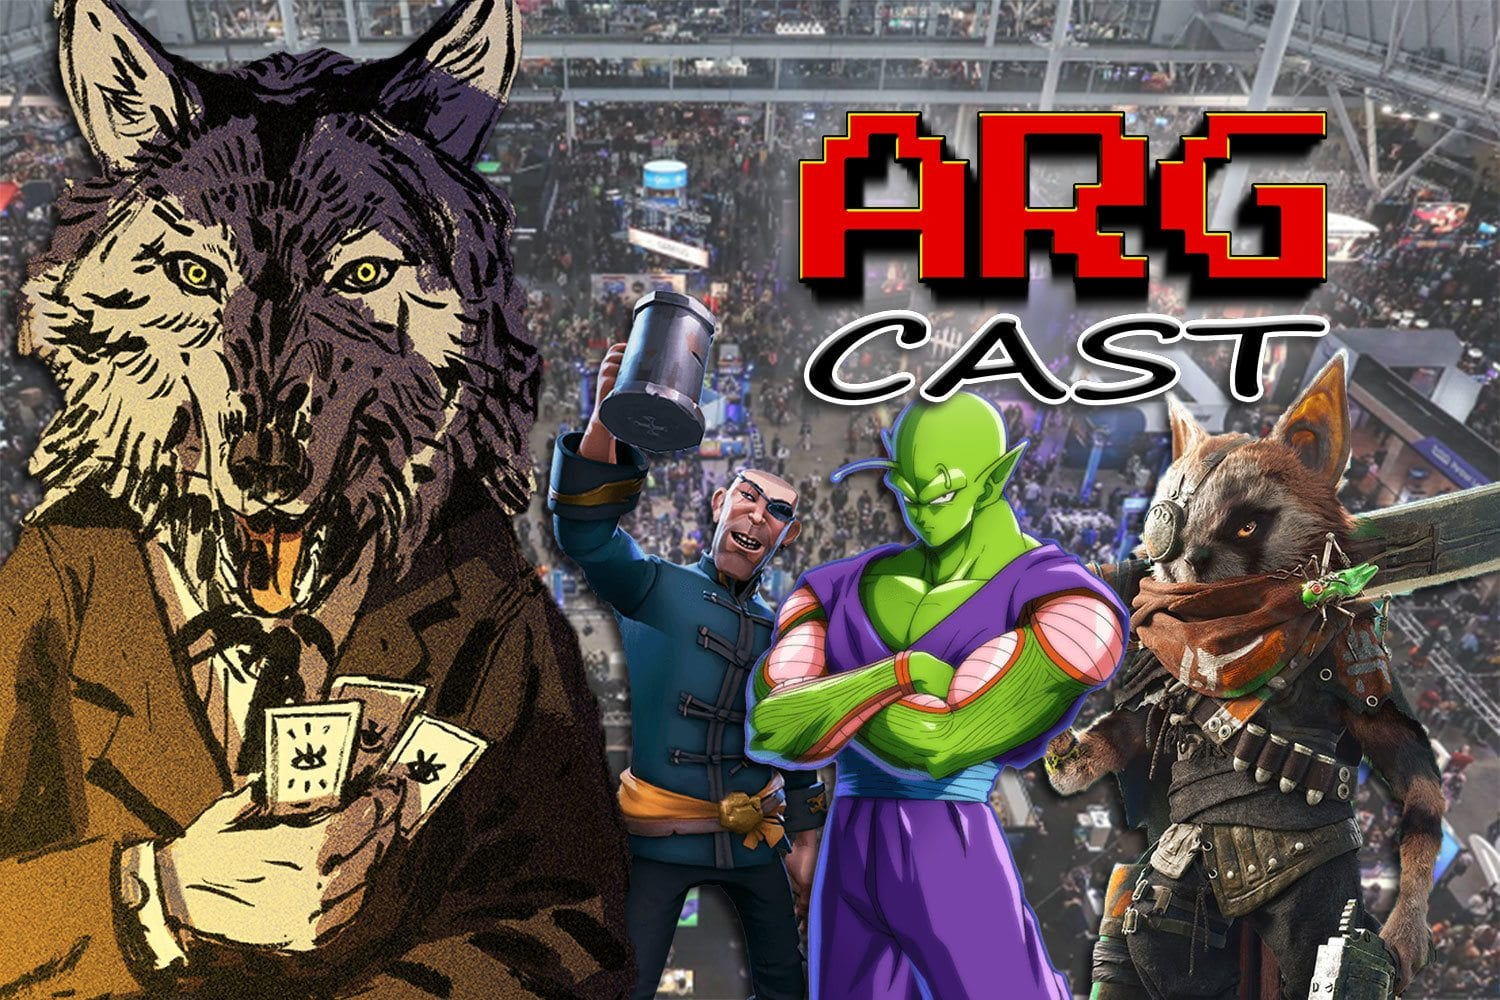 ARGcast #76: Live at PAX West 2017 with Edie and Nick of GameHounds